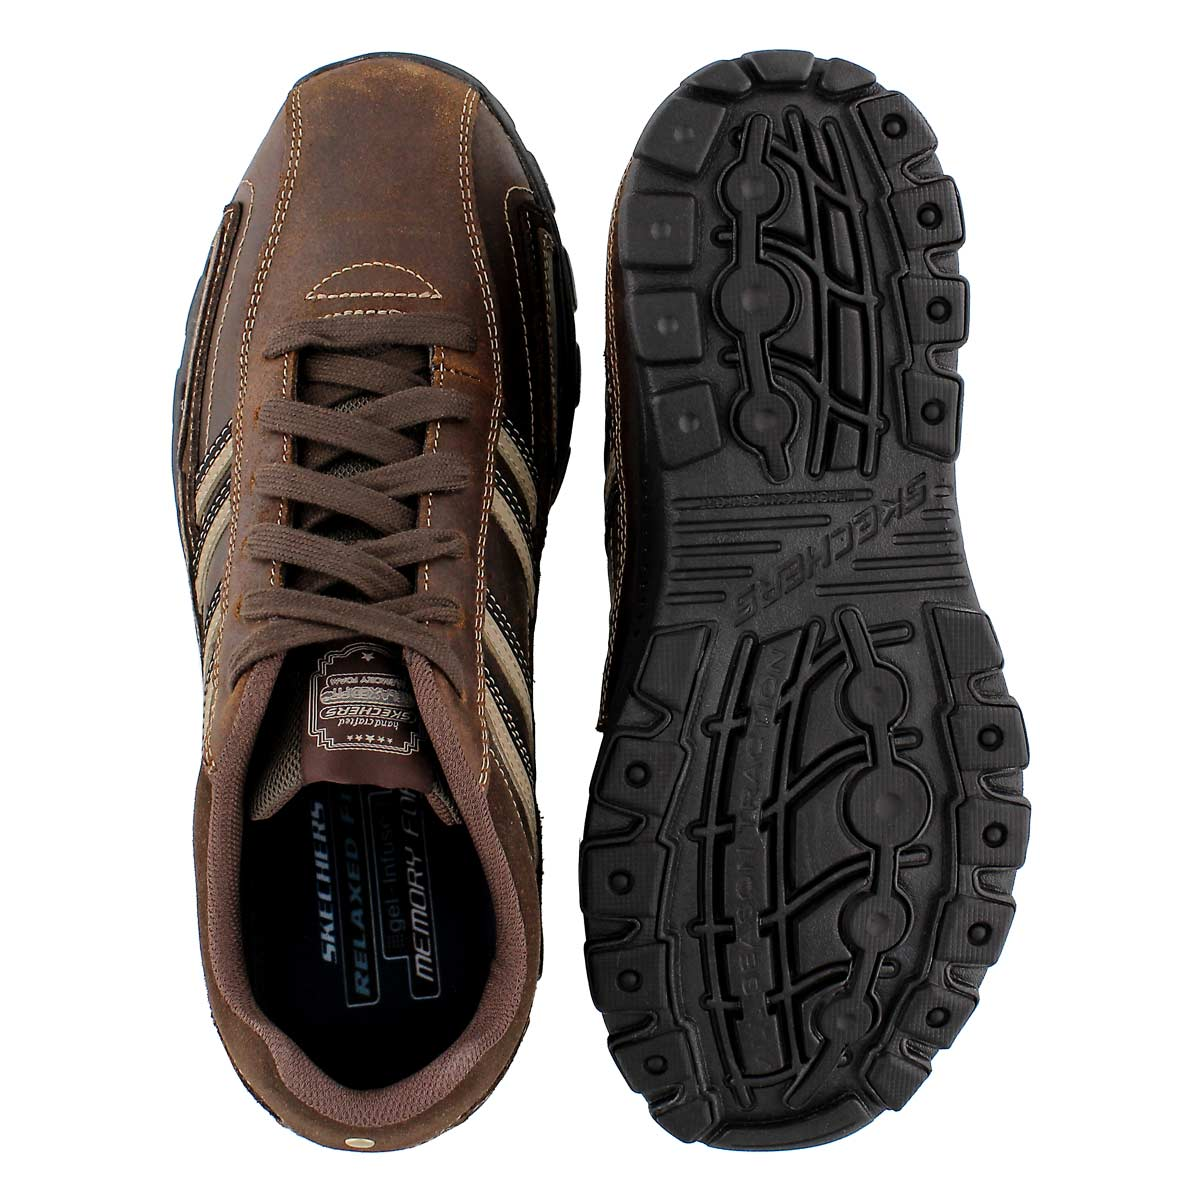 Mns Braver Gonsor brown lace-up shoes